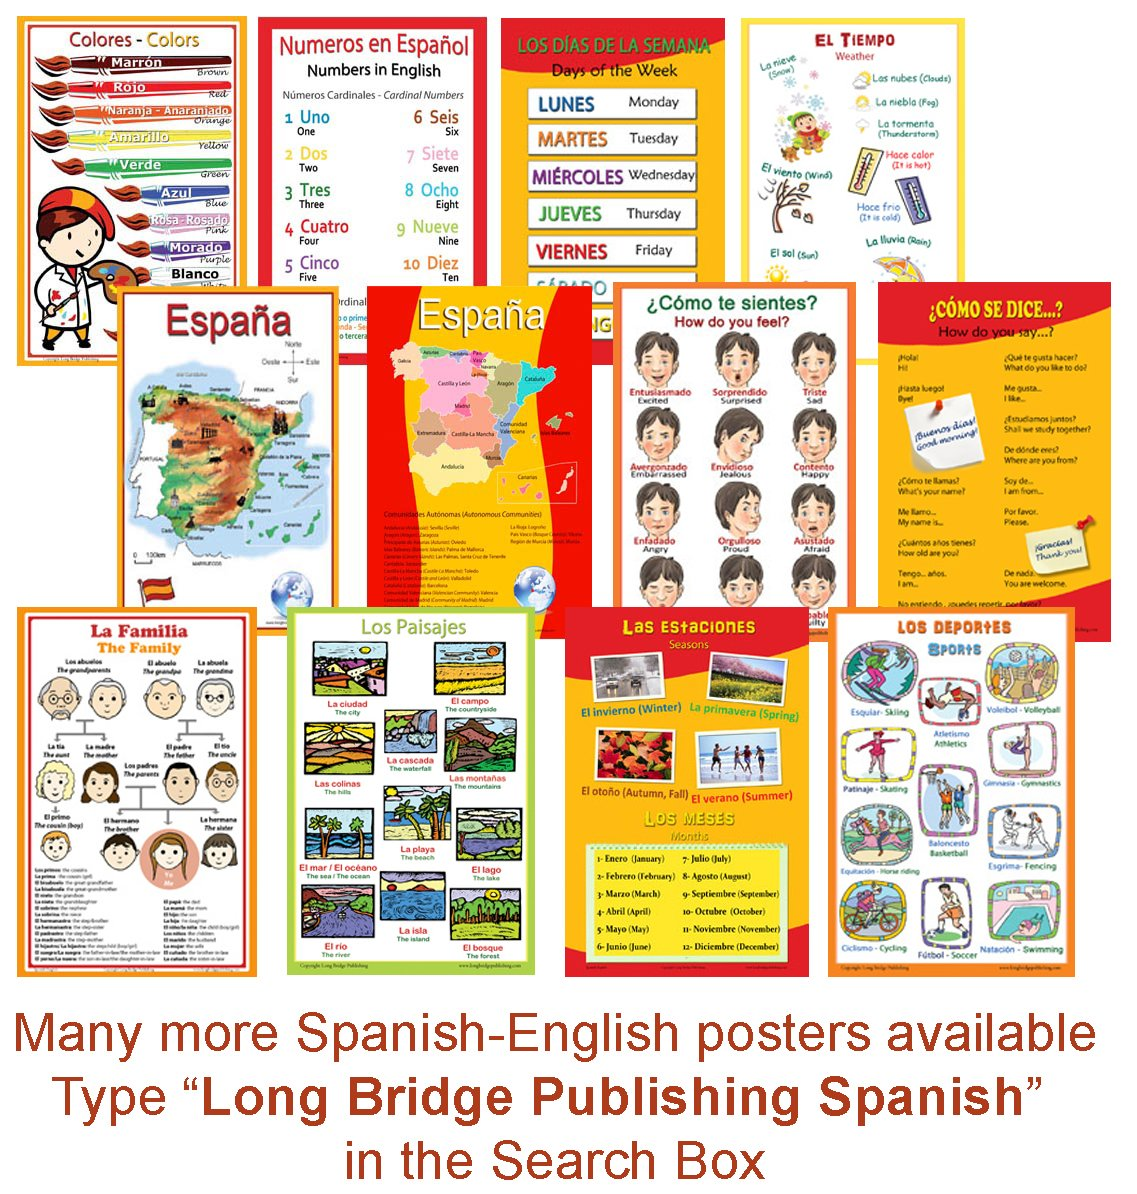 Spanish Language School Poster Set - 2 Maps of Spain: Simplified Map and Map with the 17 Autonomous Communities - Wall Charts for Home and Classroom - Spanish and English Text (11x17 inches)